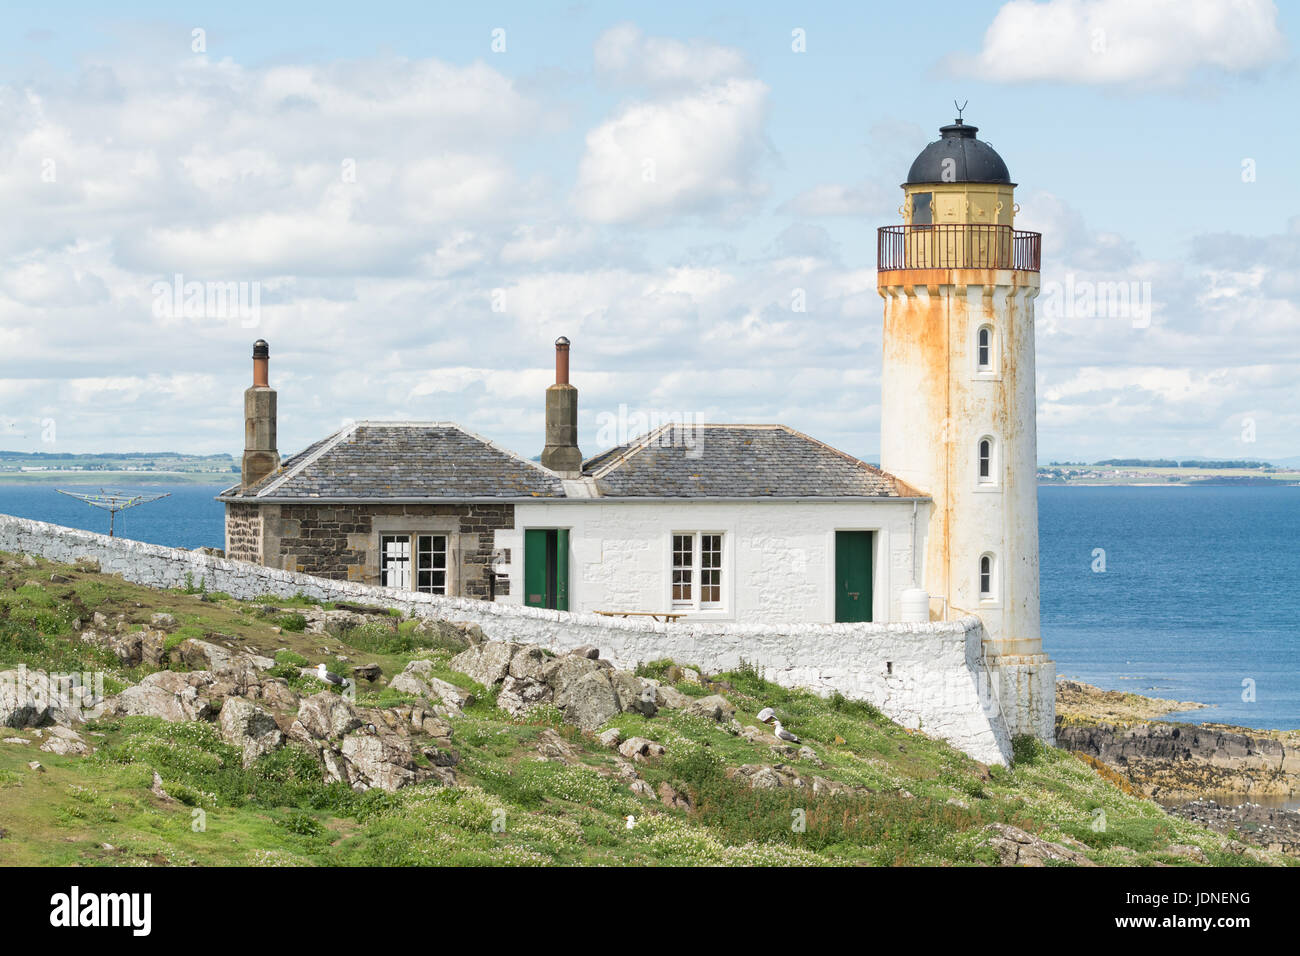 Isle of May, Anstruther, Scotland - disused 'low light' lighthouse, now used as a bird observatory and field - Stock Image